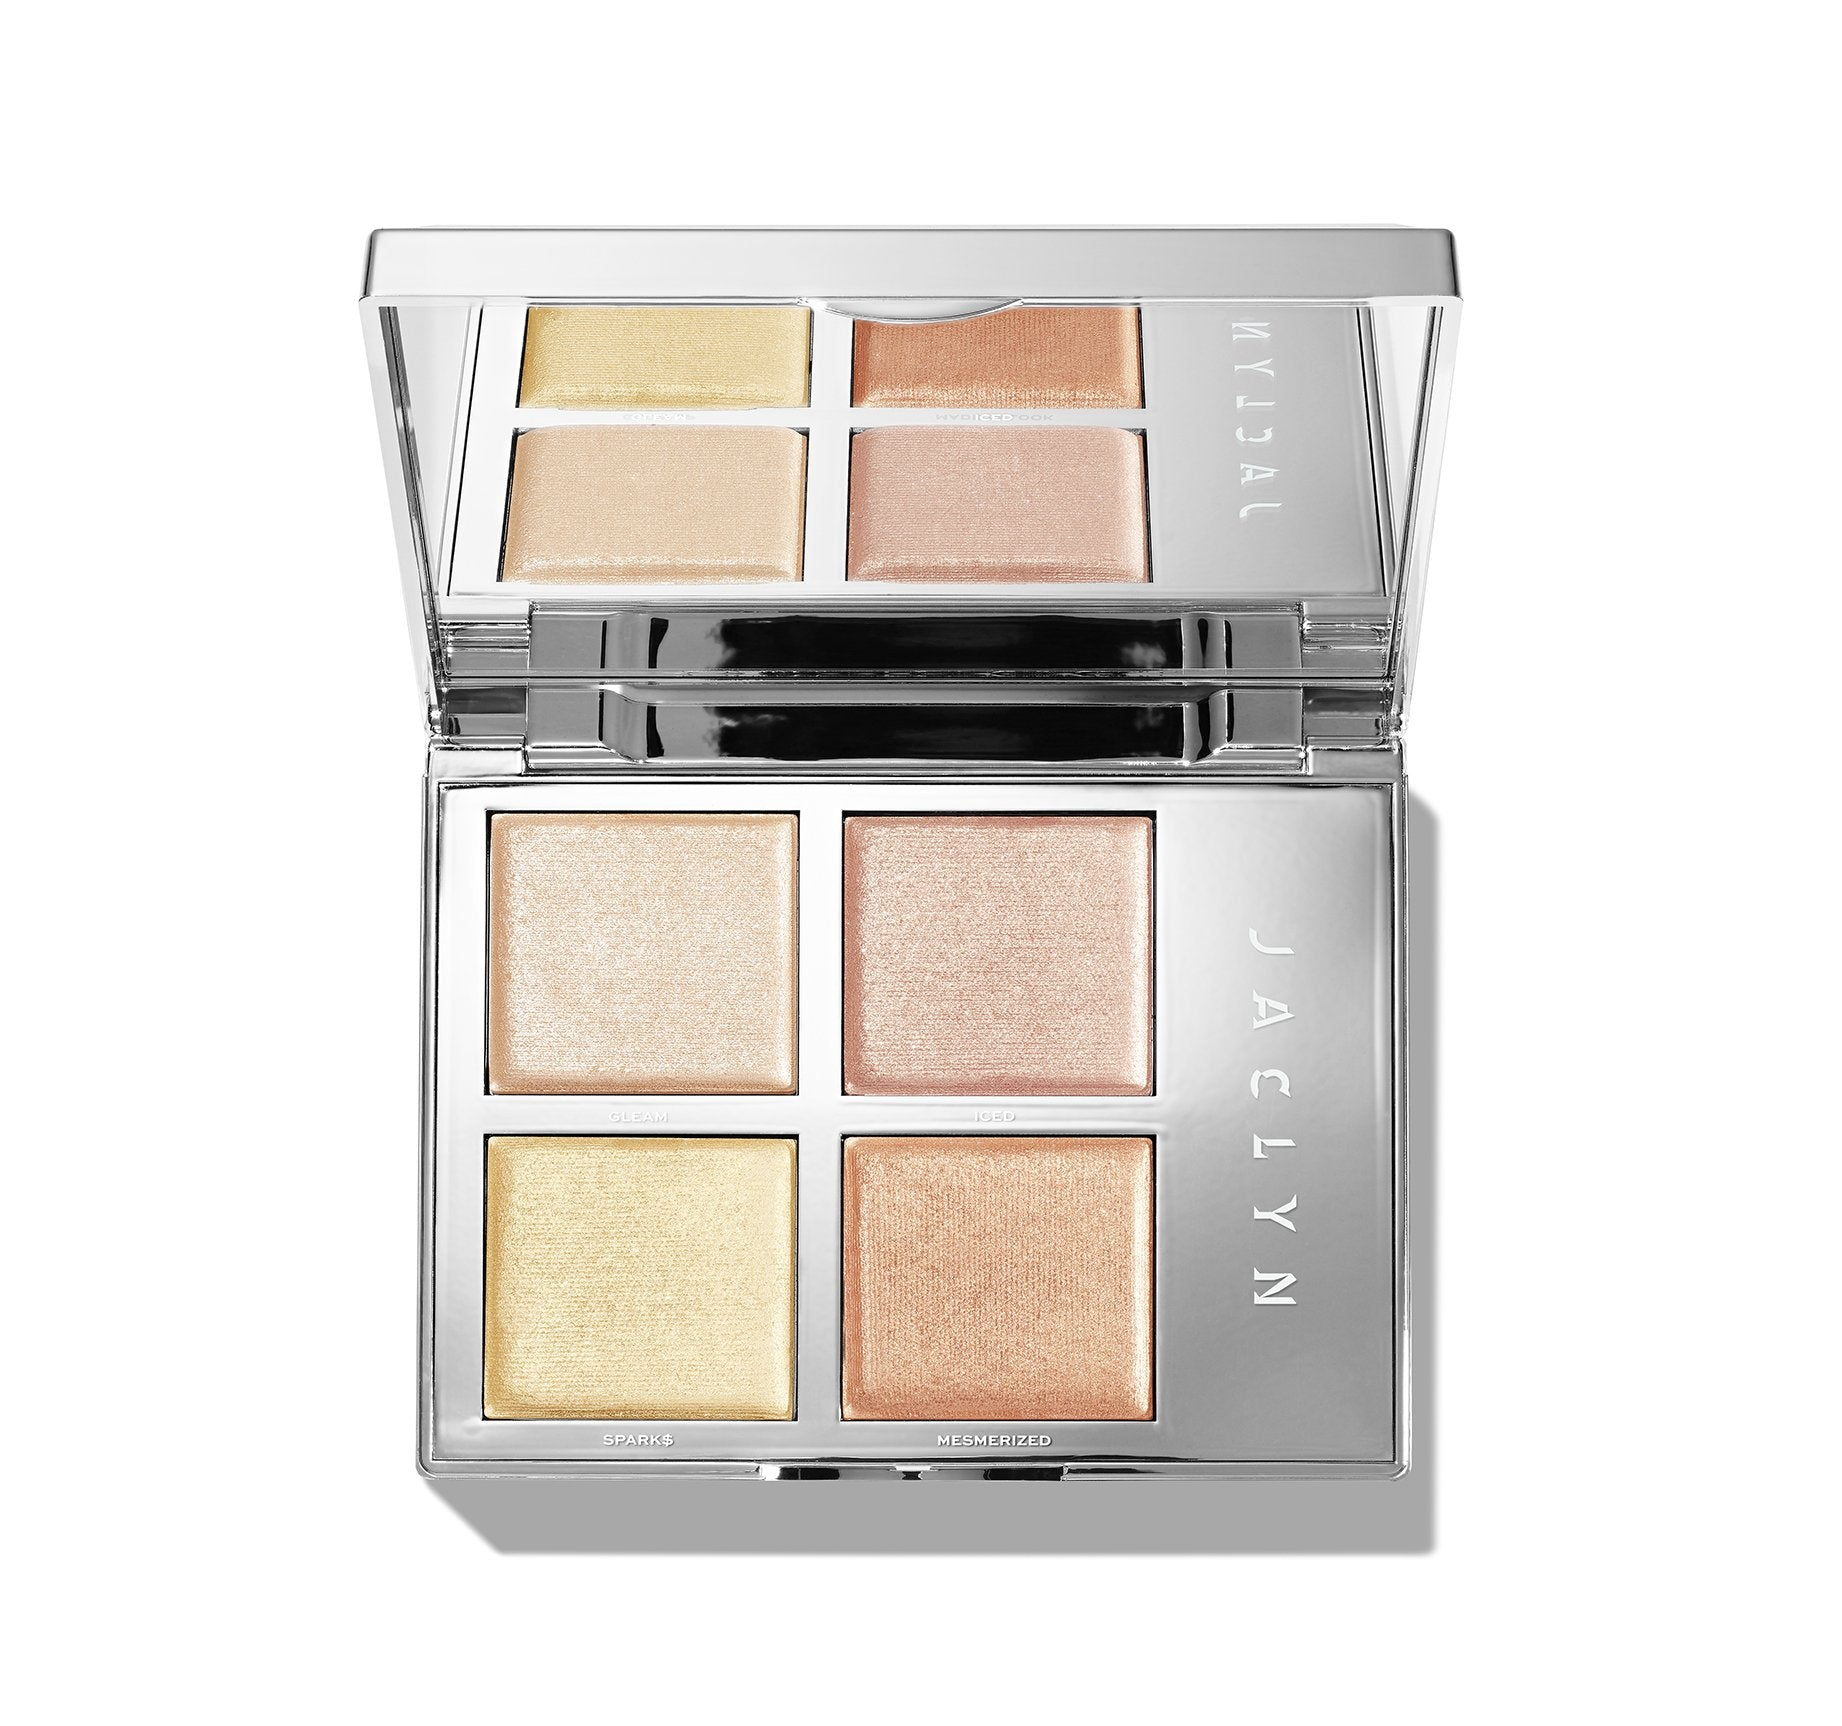 PALETTE D'HIGHLIGHTERS ACCENT LIGHT - THE FLASH, agrandir l'image